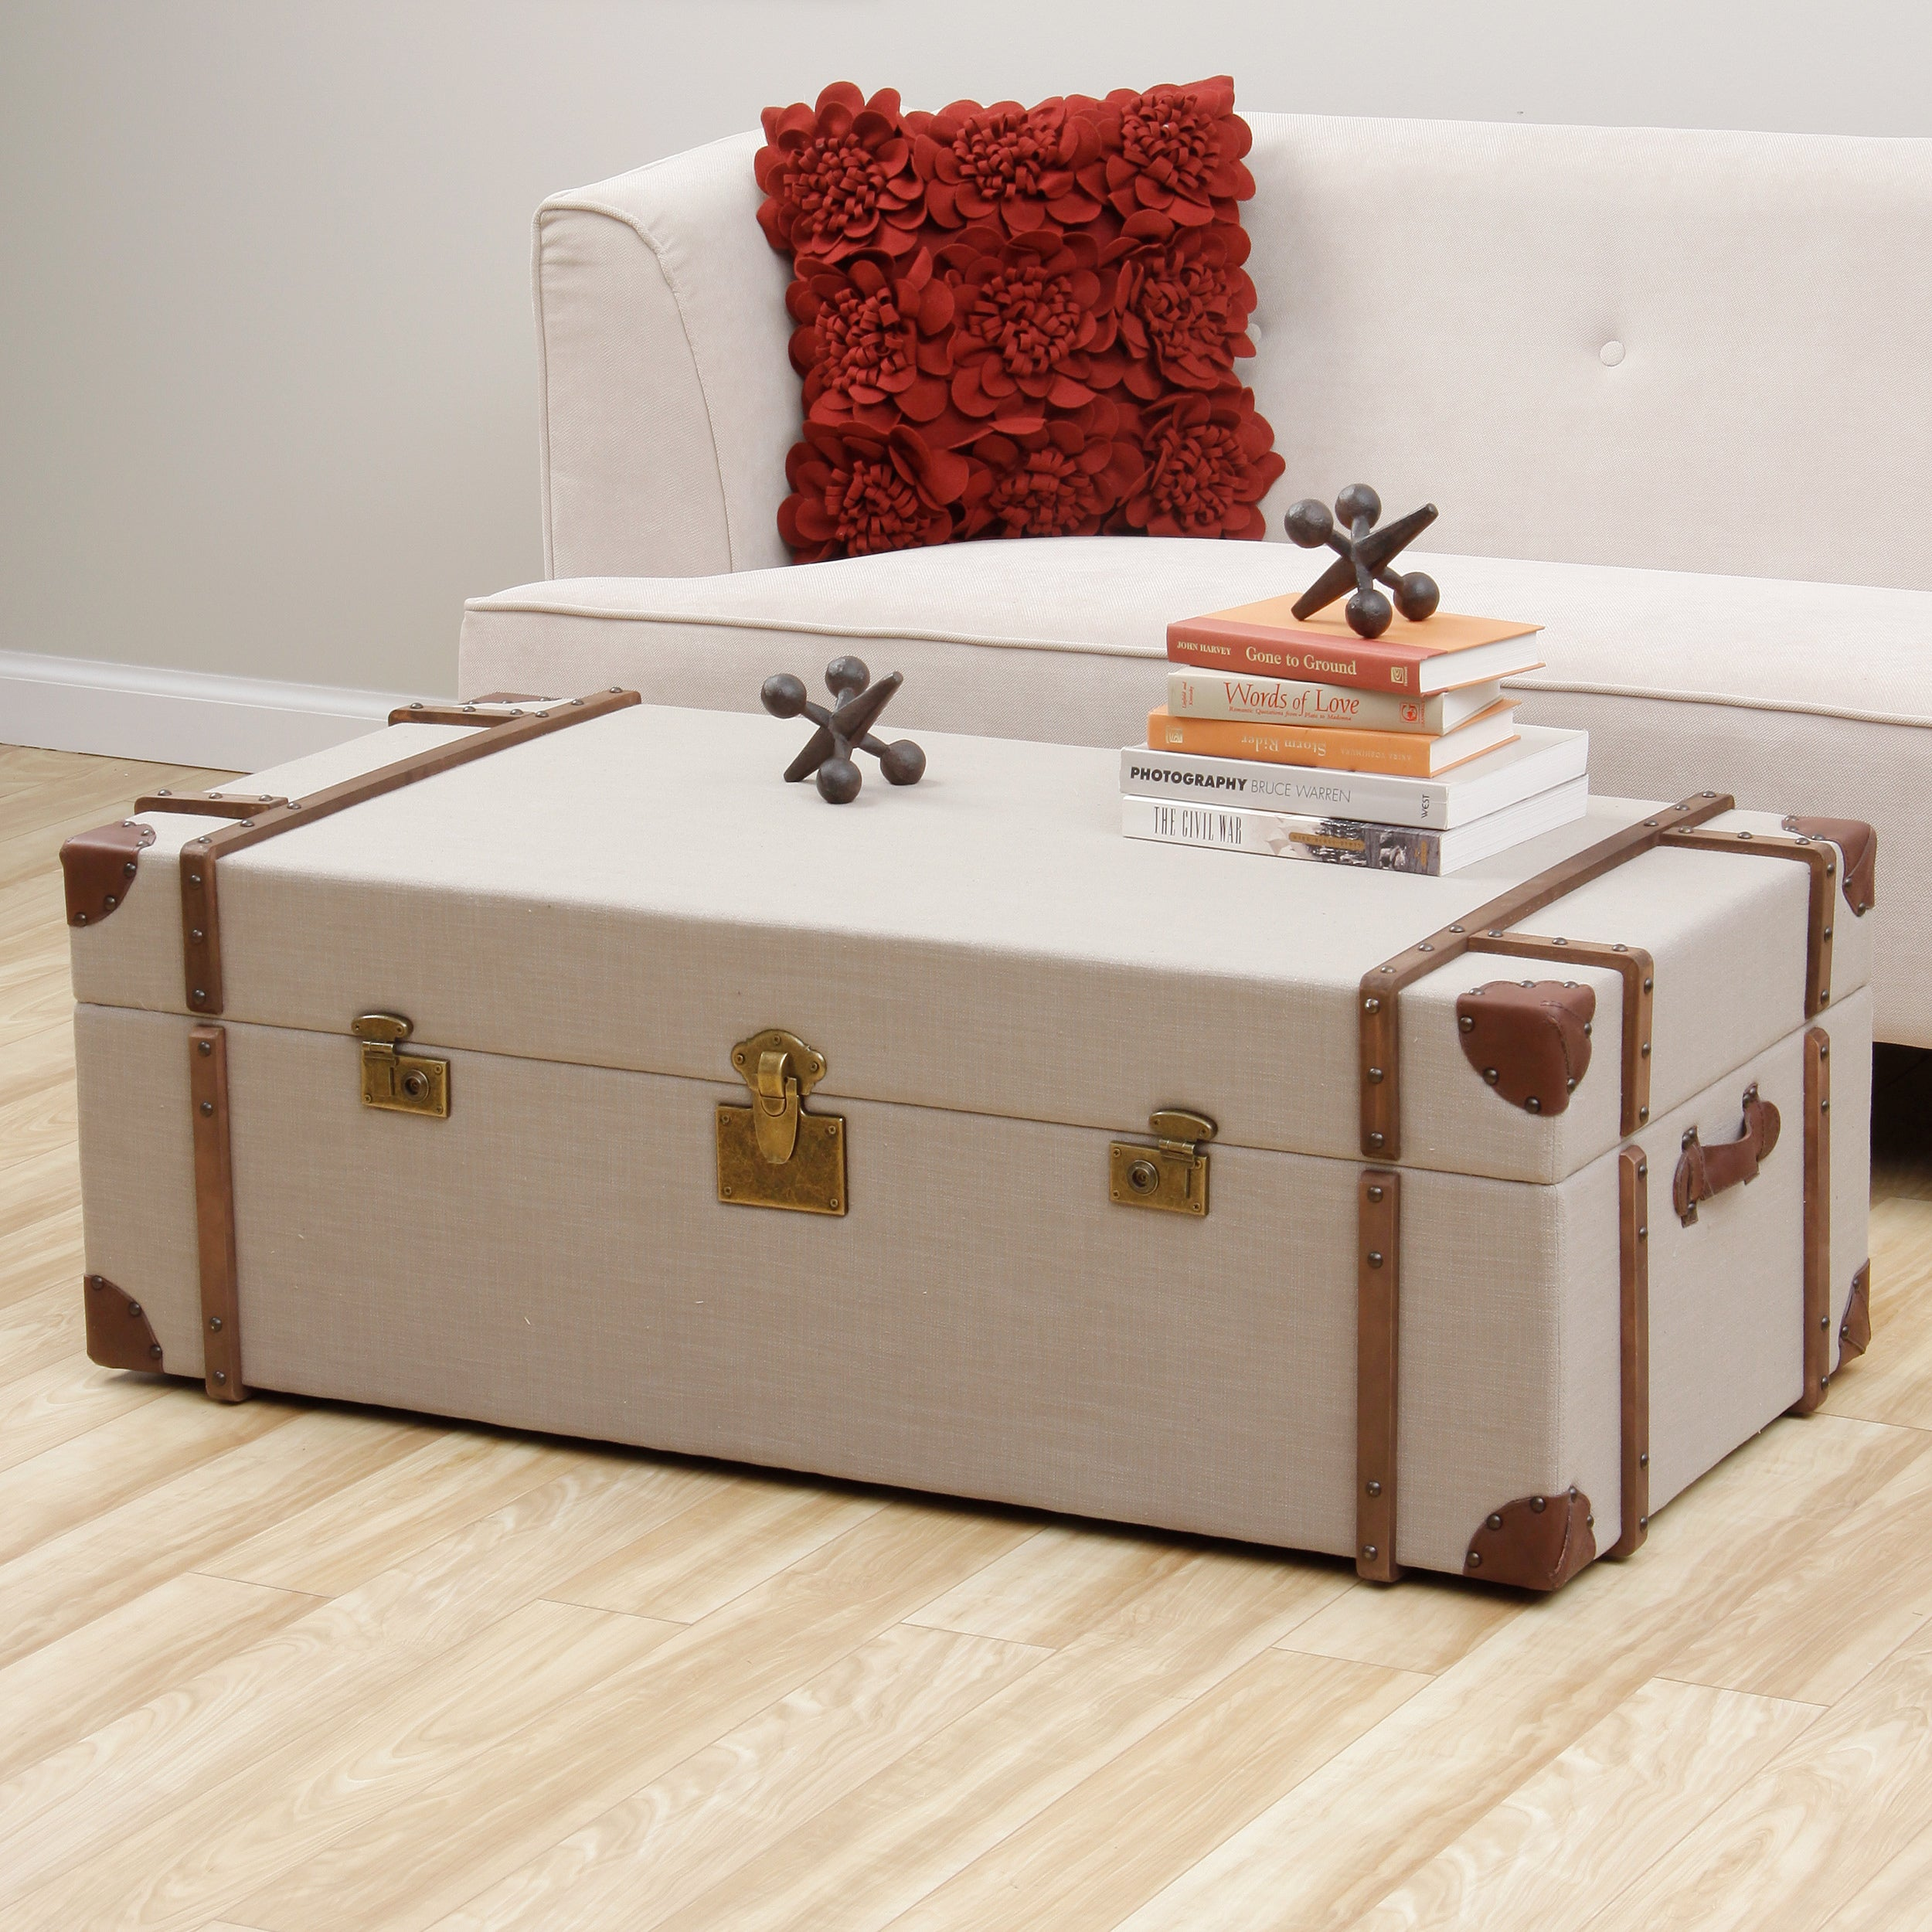 Beige Trunk Coffee Table: Journey Beige Linen Trunk Coffee Table